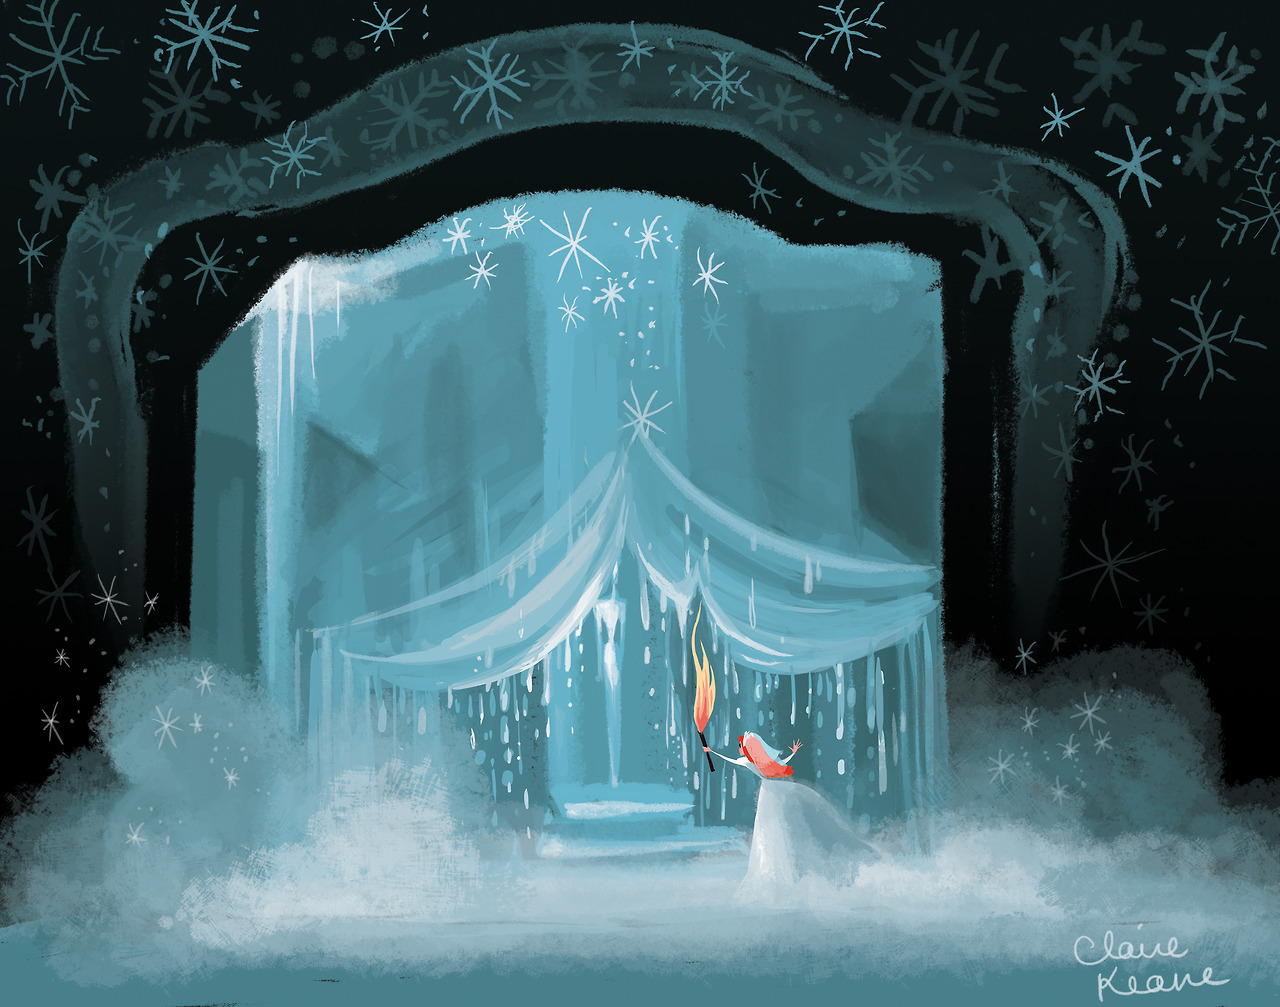 Early Visual Development for Frozen - Elsa the Snow Queen ...